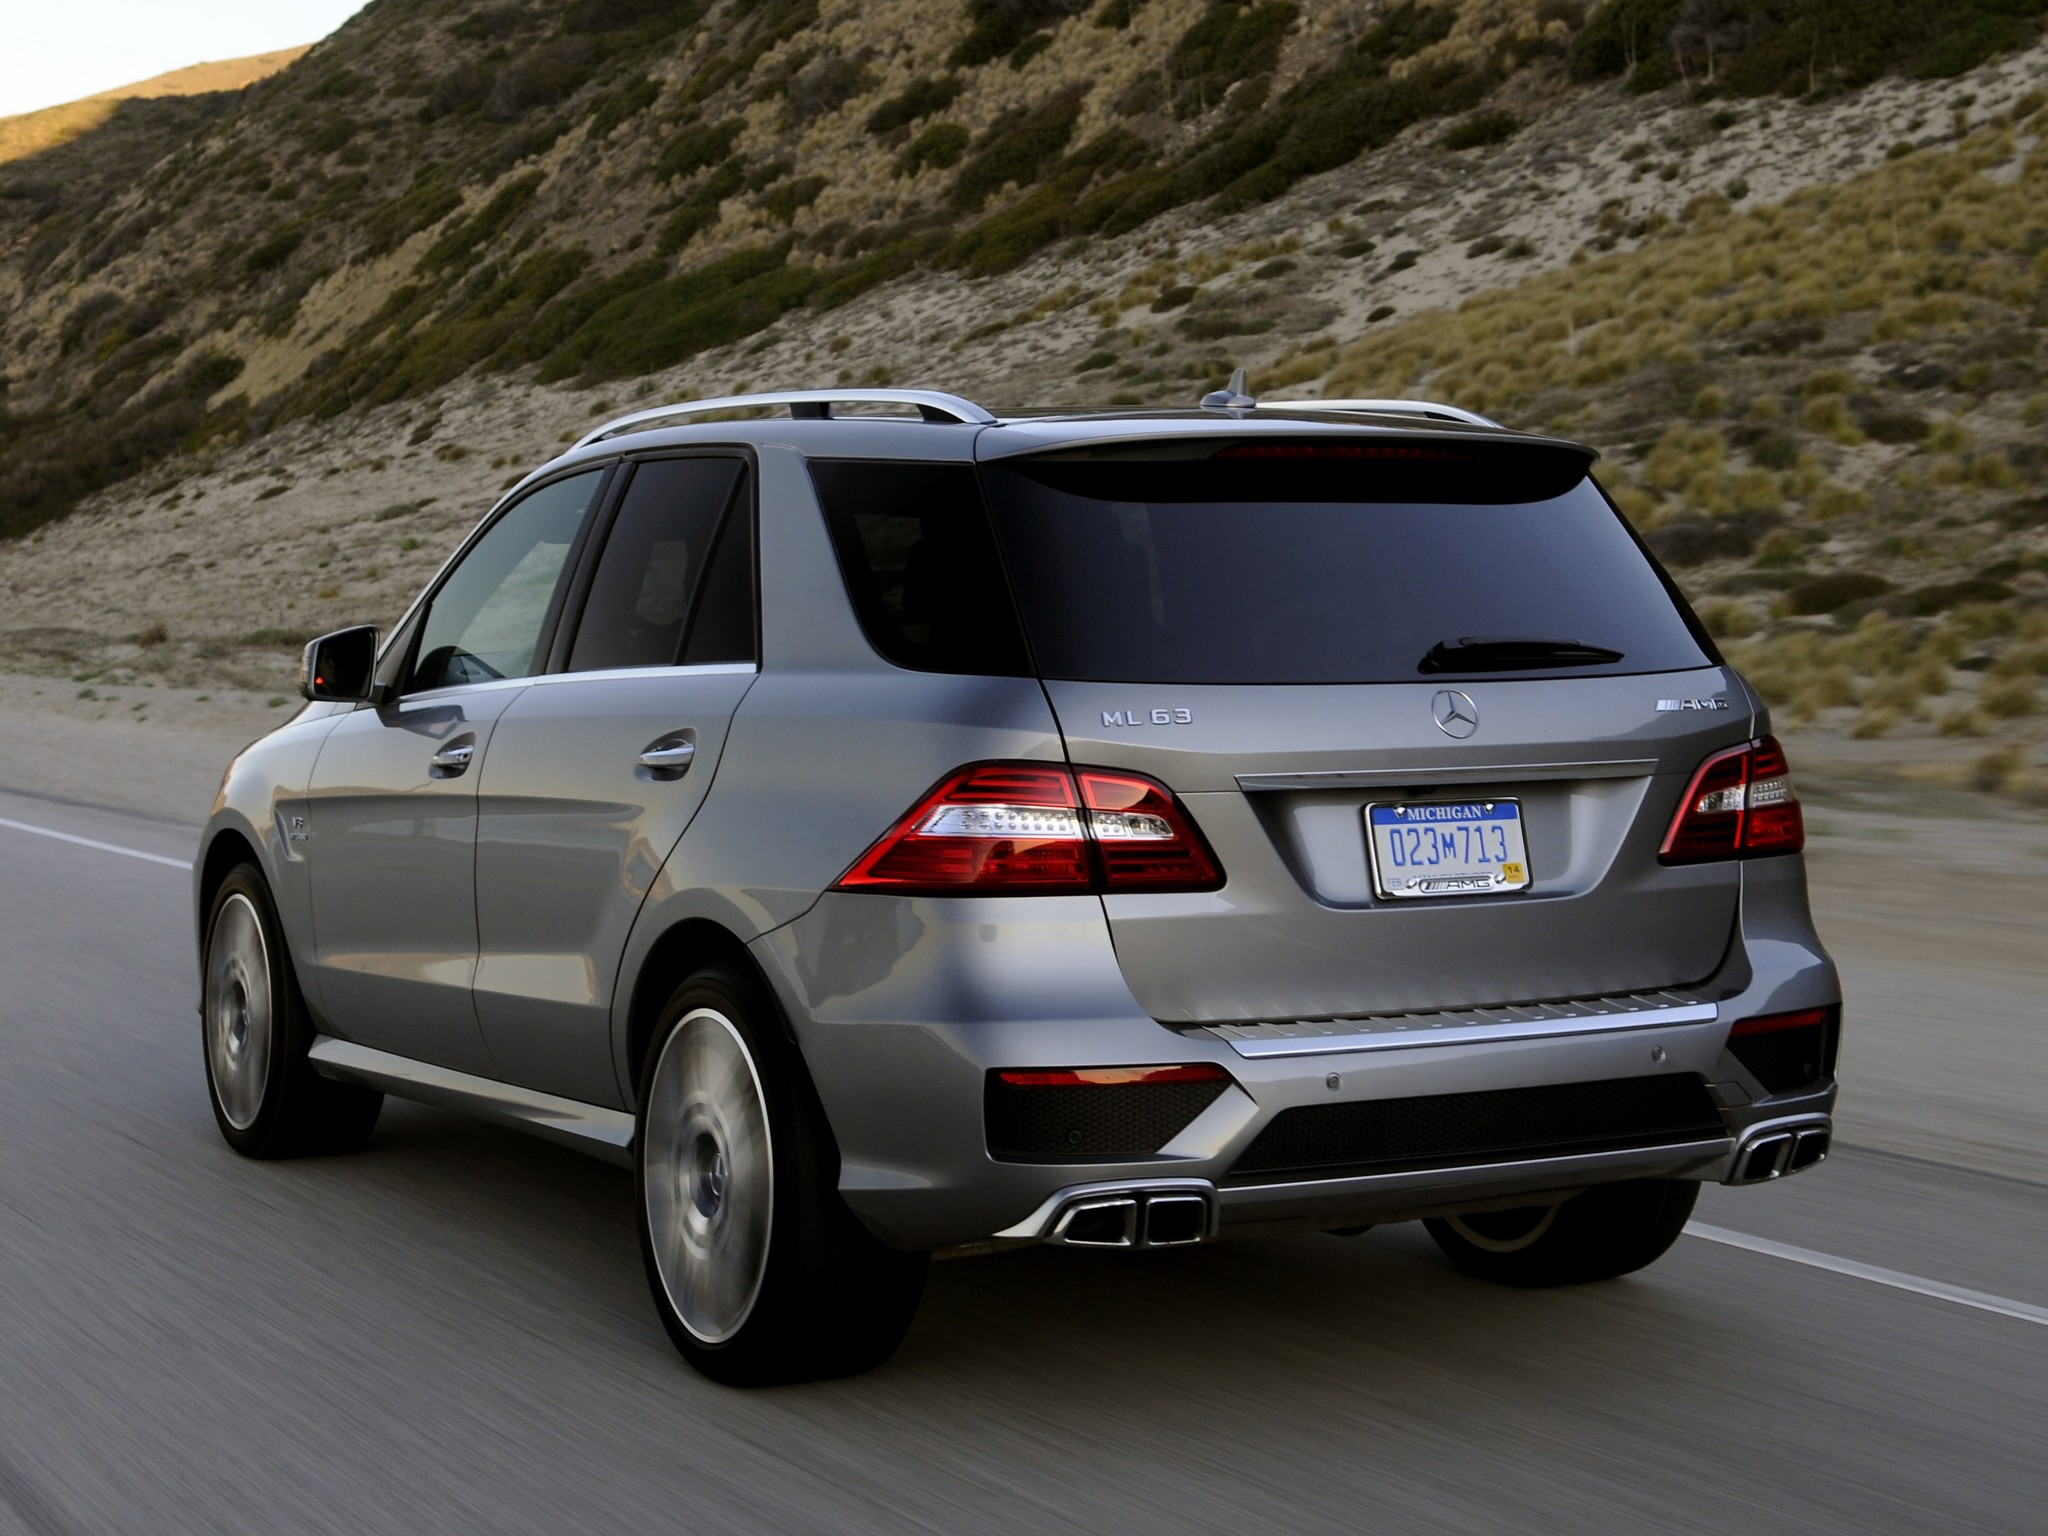 mercedes benz ml 63 amg w166 specs 2011 2012 2013 2014 2015 autoevolution. Black Bedroom Furniture Sets. Home Design Ideas